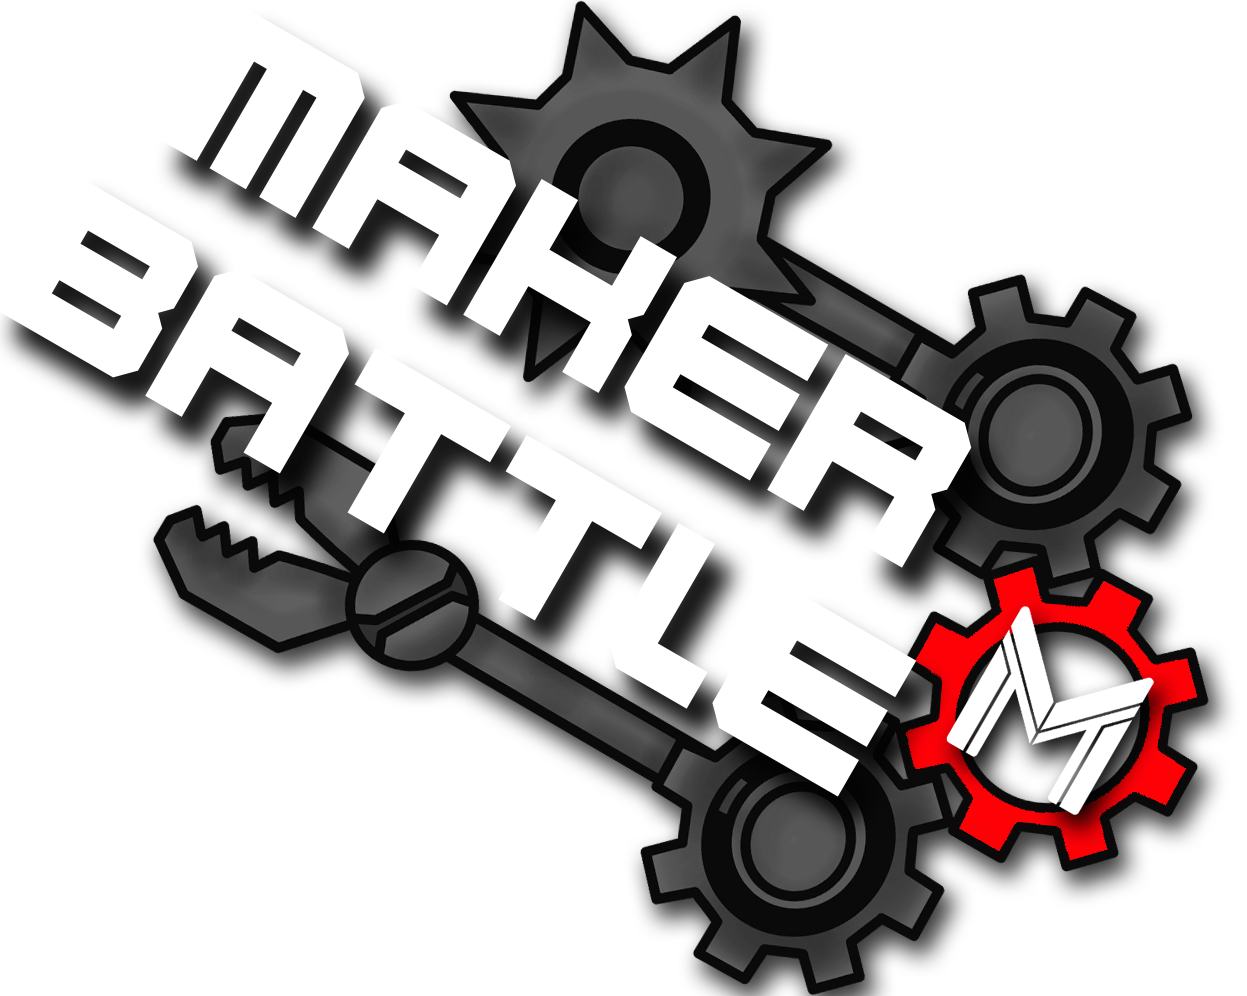 Makerbattle lgo   photoshop file with layers of parts  1